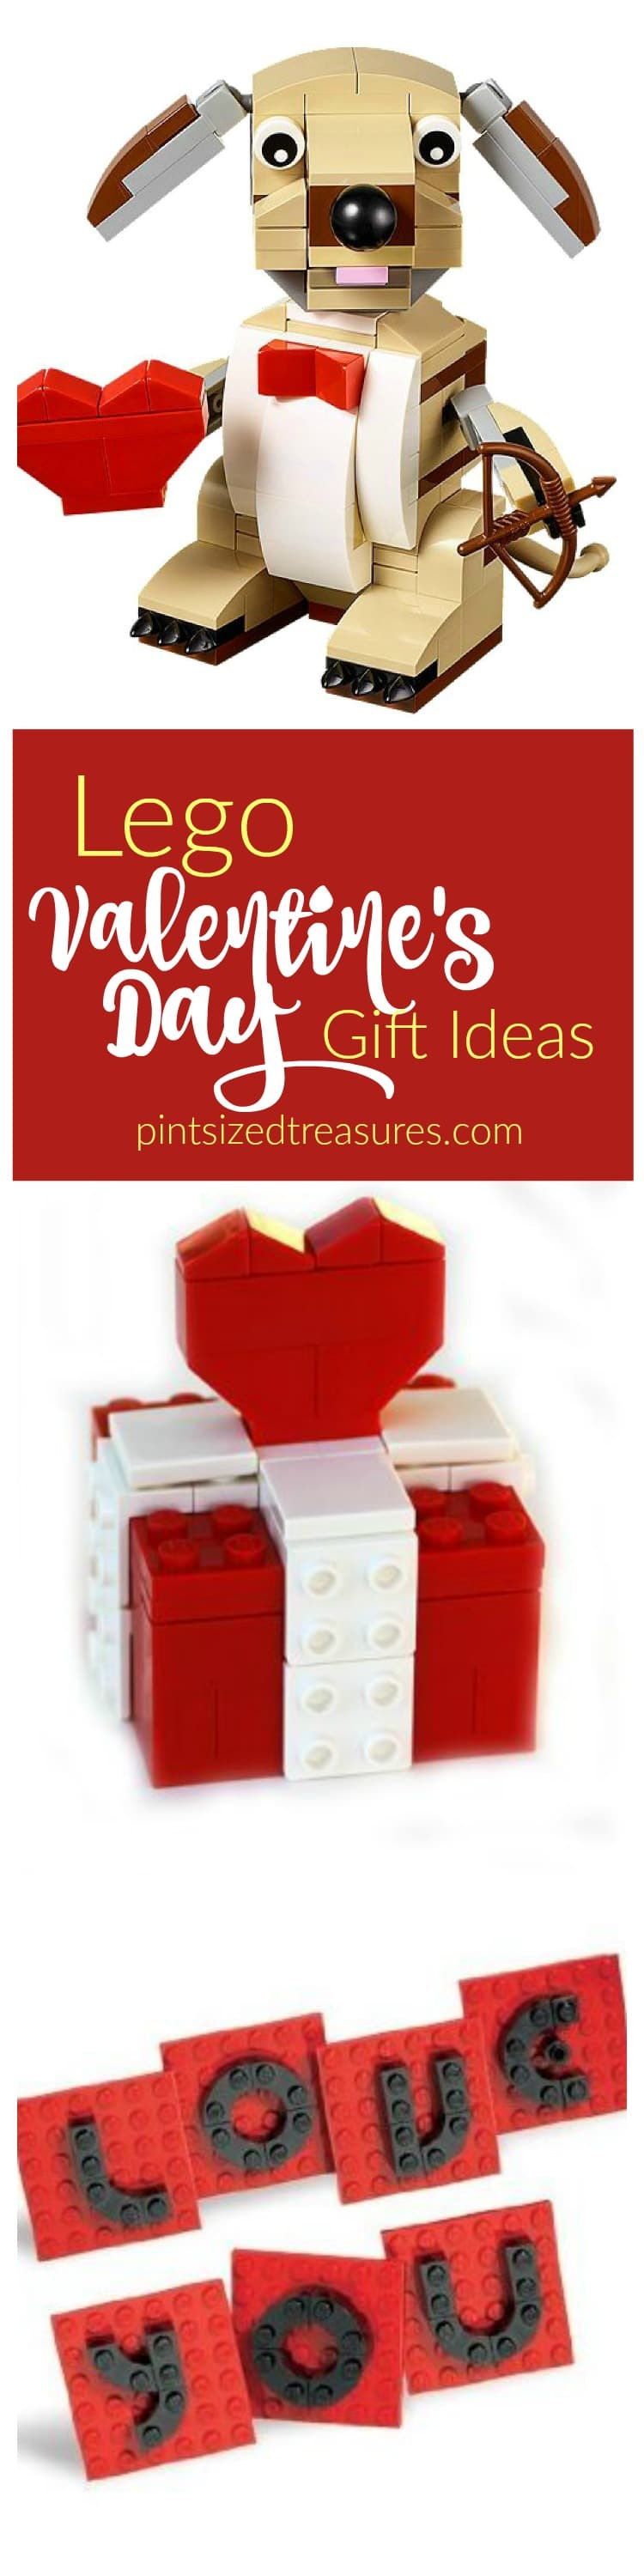 lego gift ideas for Valentine's Day